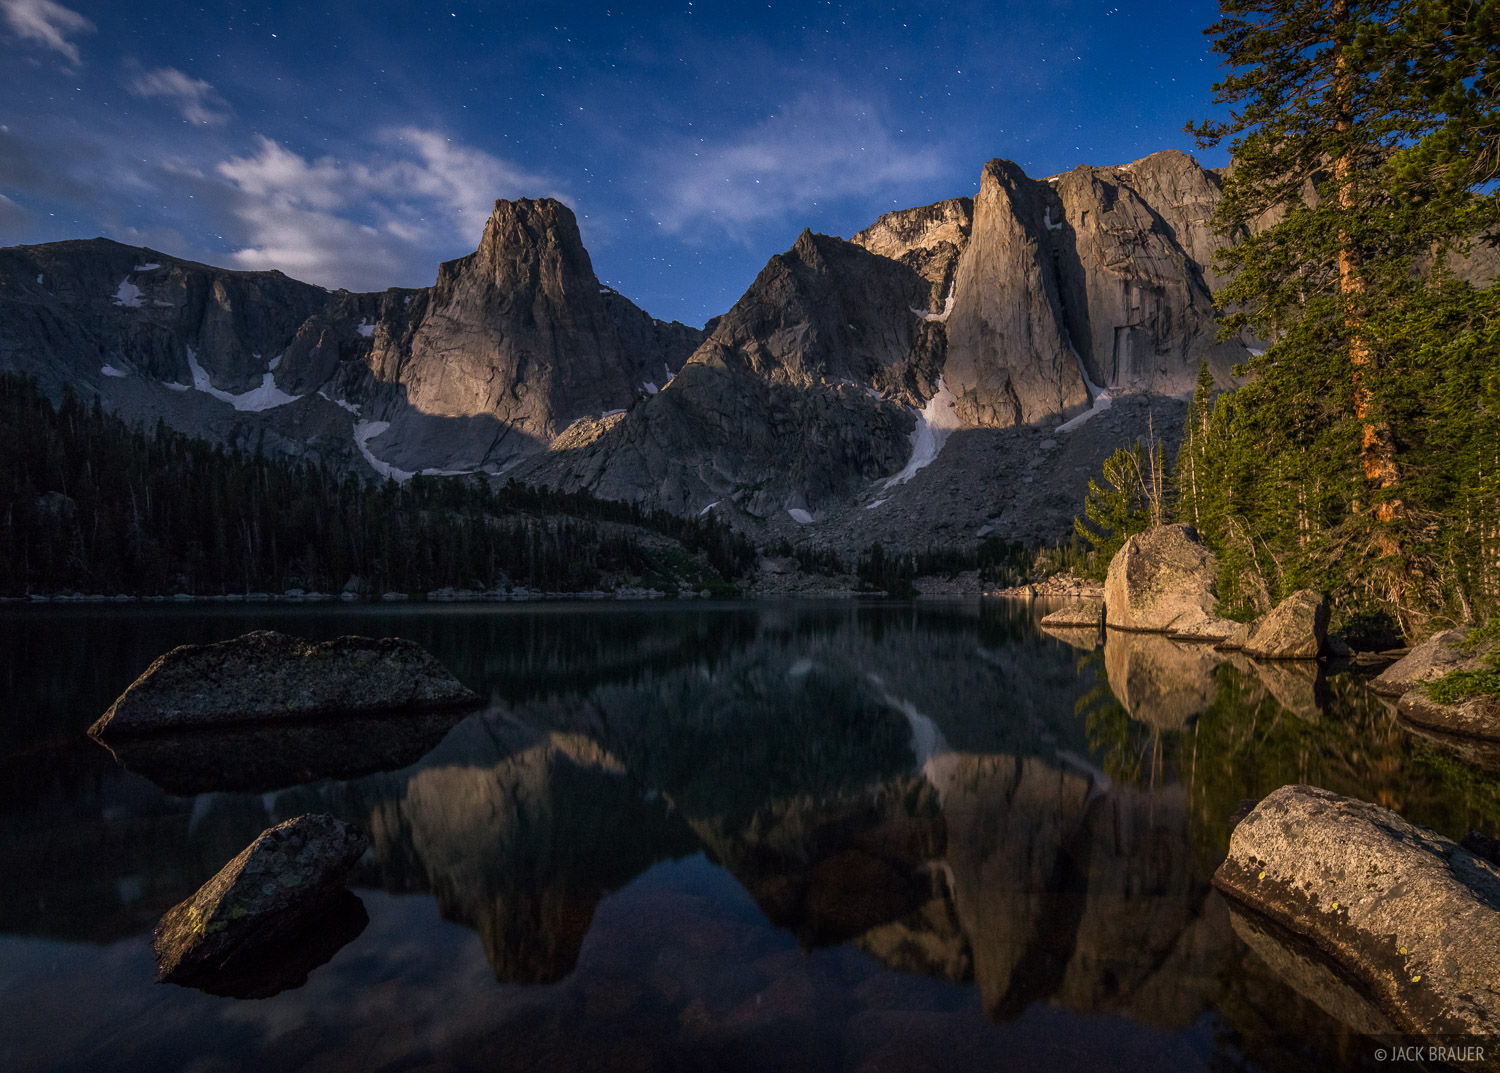 The rising full moon shines on The Monolith and Dogtooth Mountain, reflected in Papoose Lake.